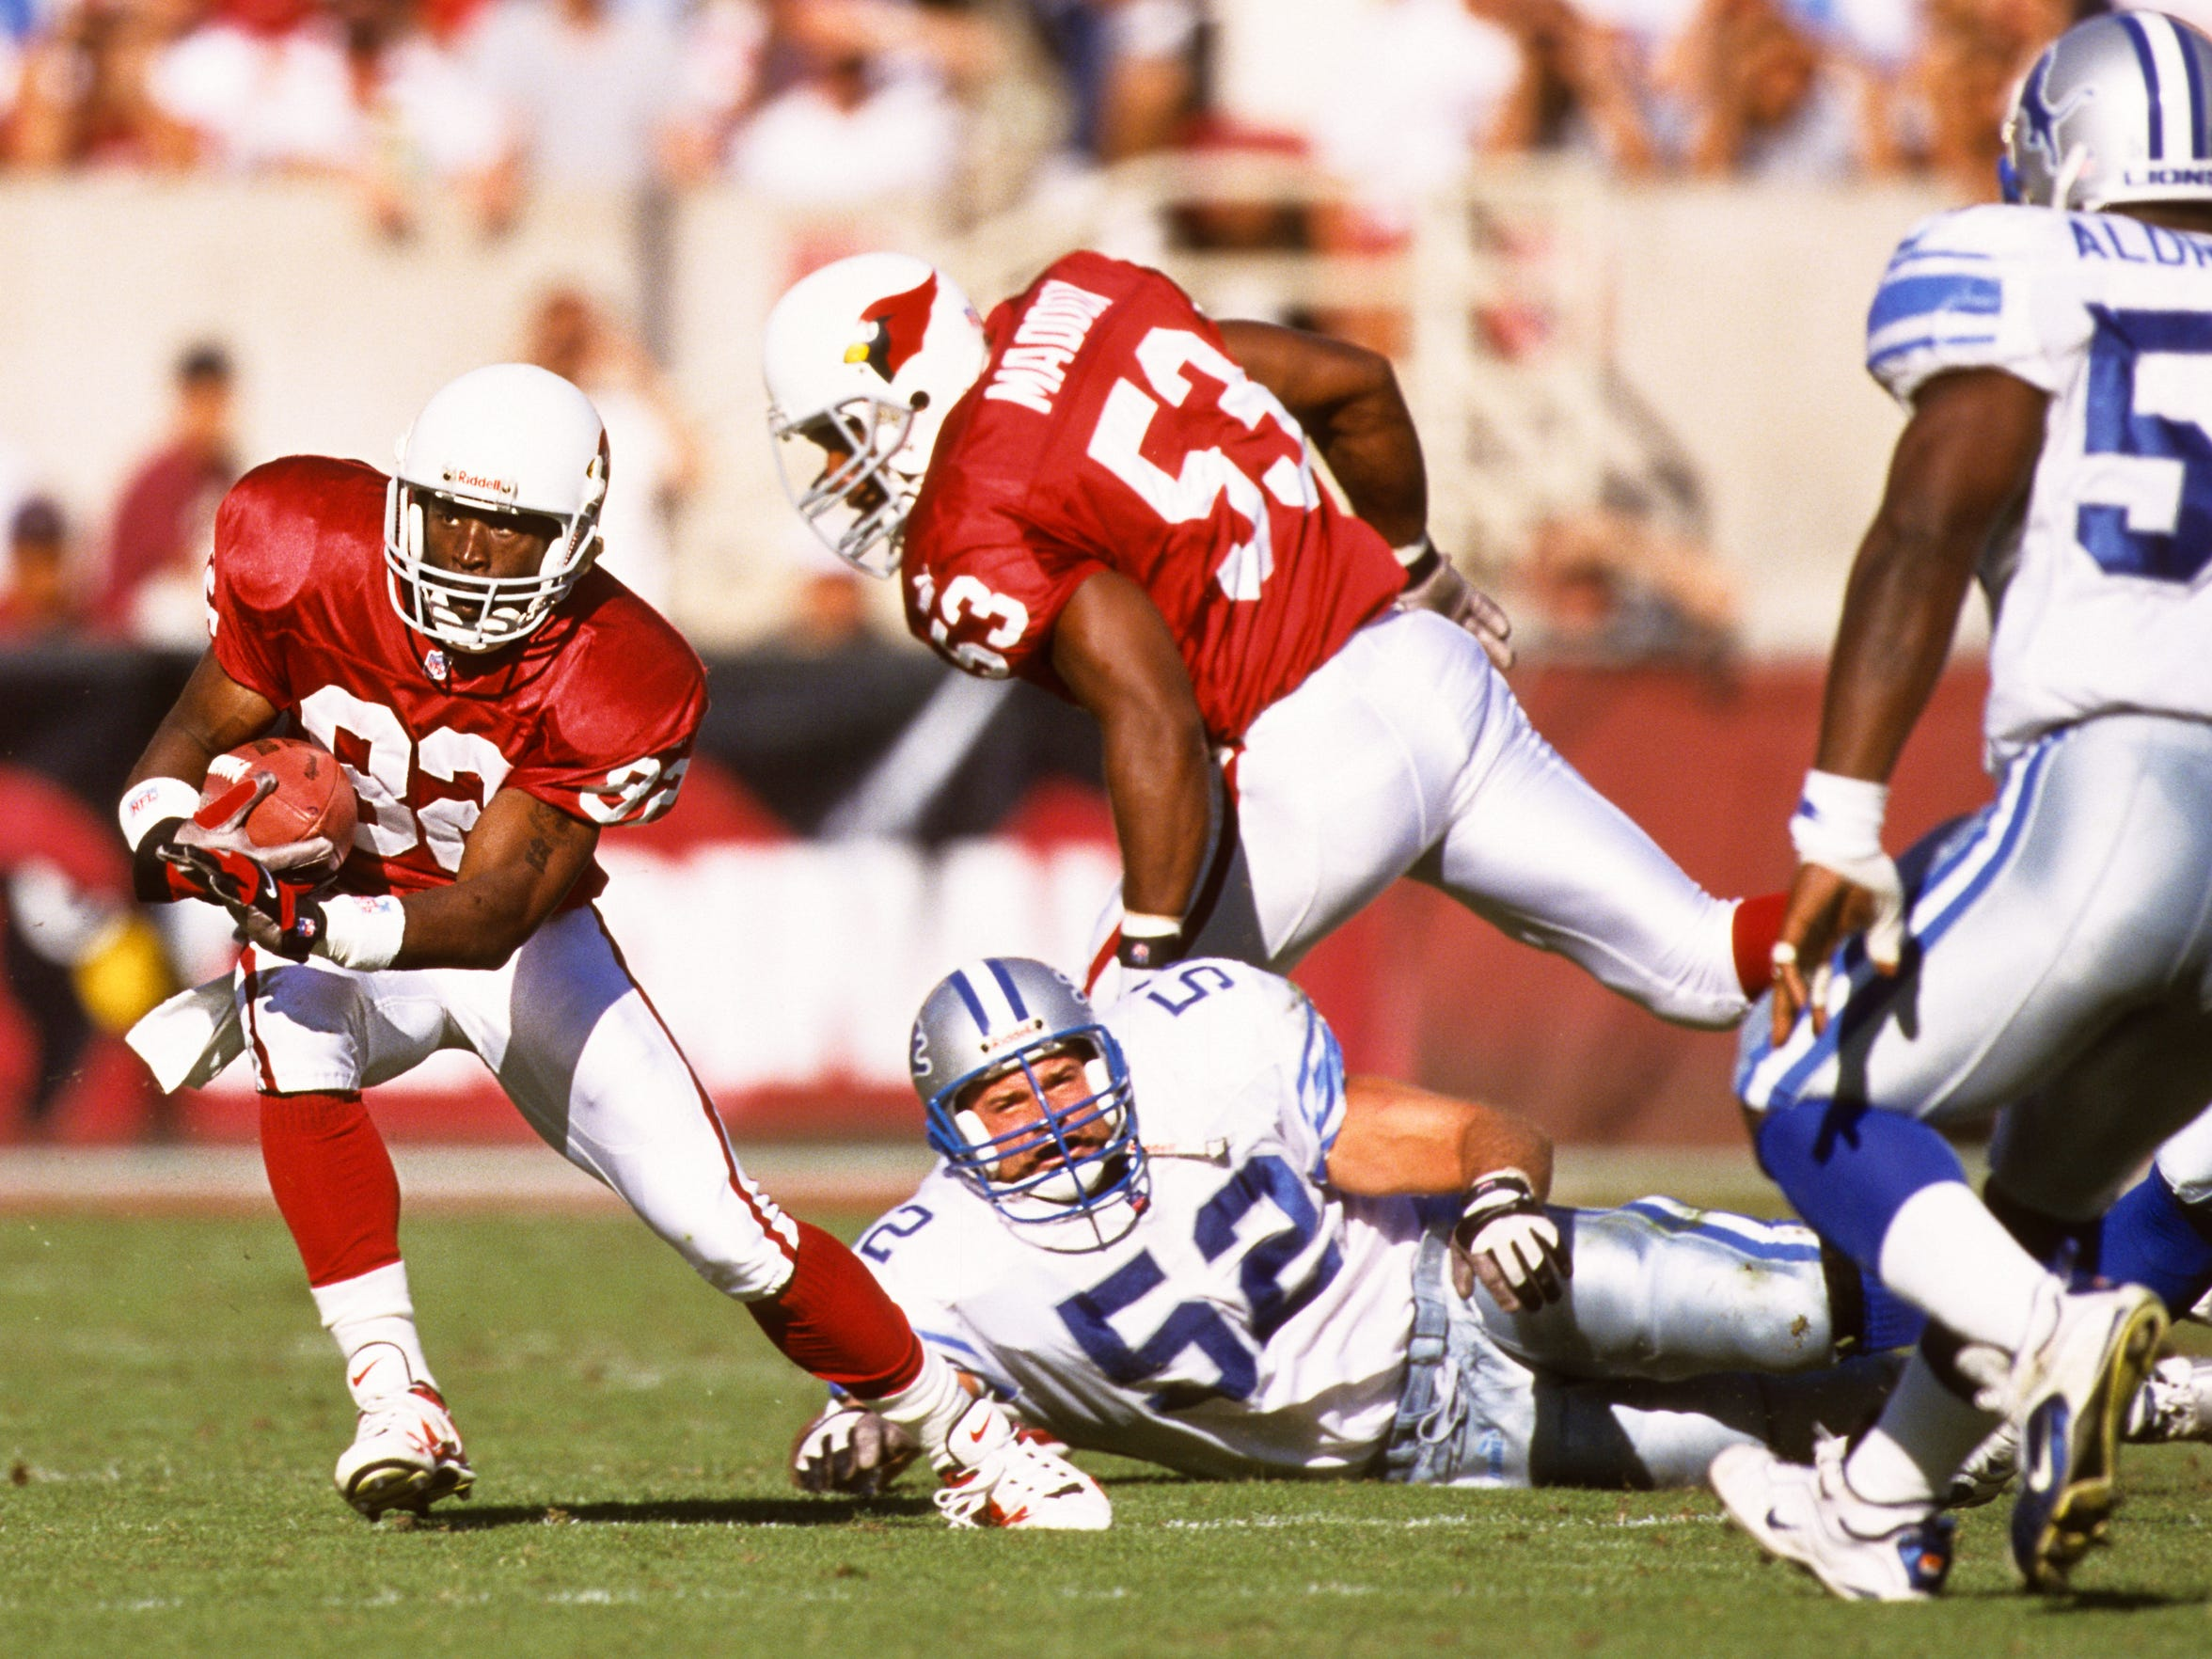 f8eb9742 Ex-Arizona Cardinals players among thousands in NFL concussion suit